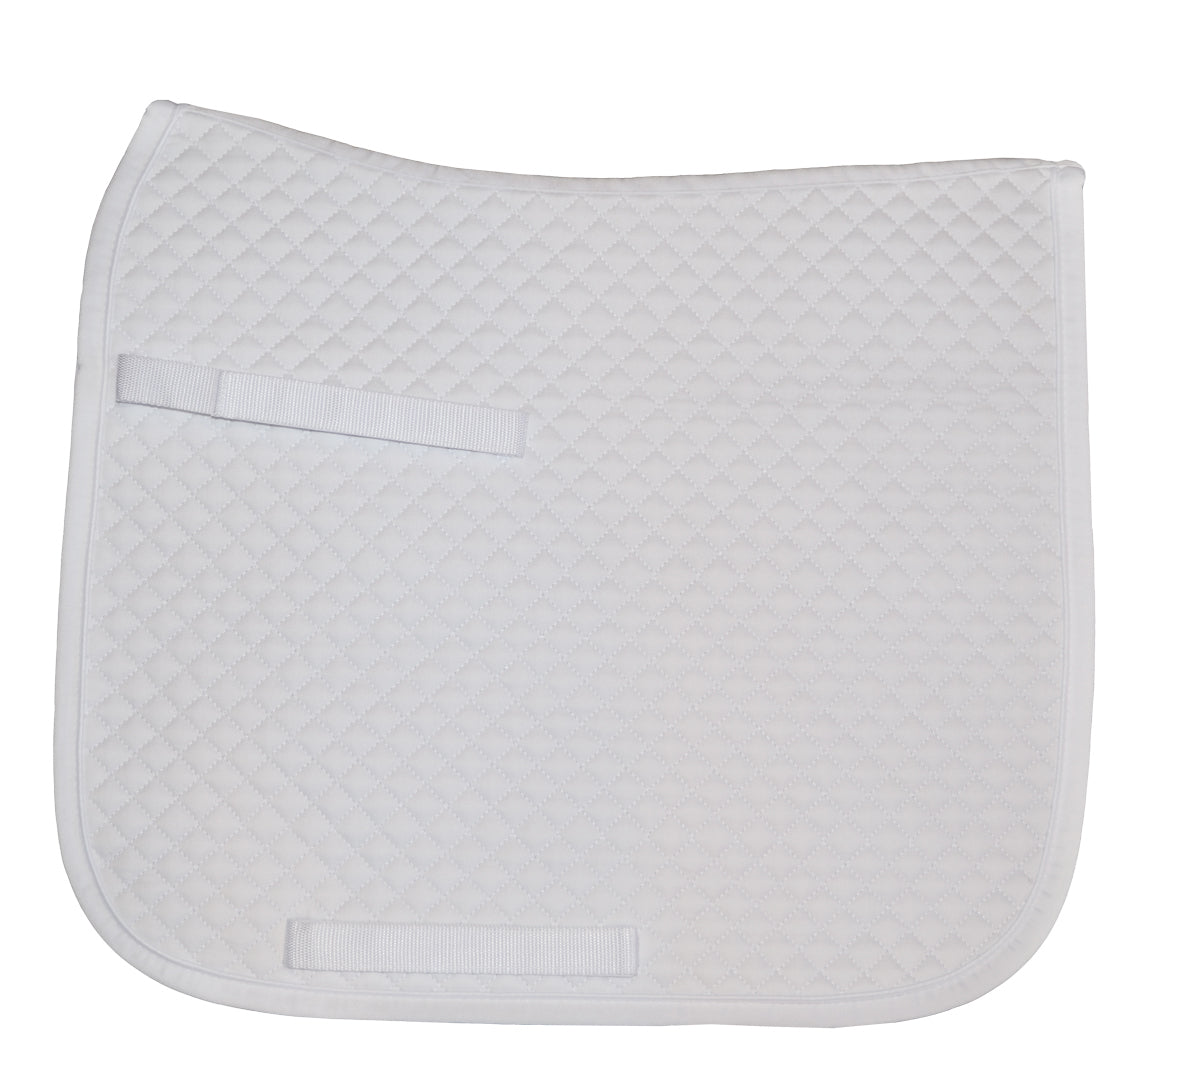 Shires Deluxe Dressage Saddle Pad